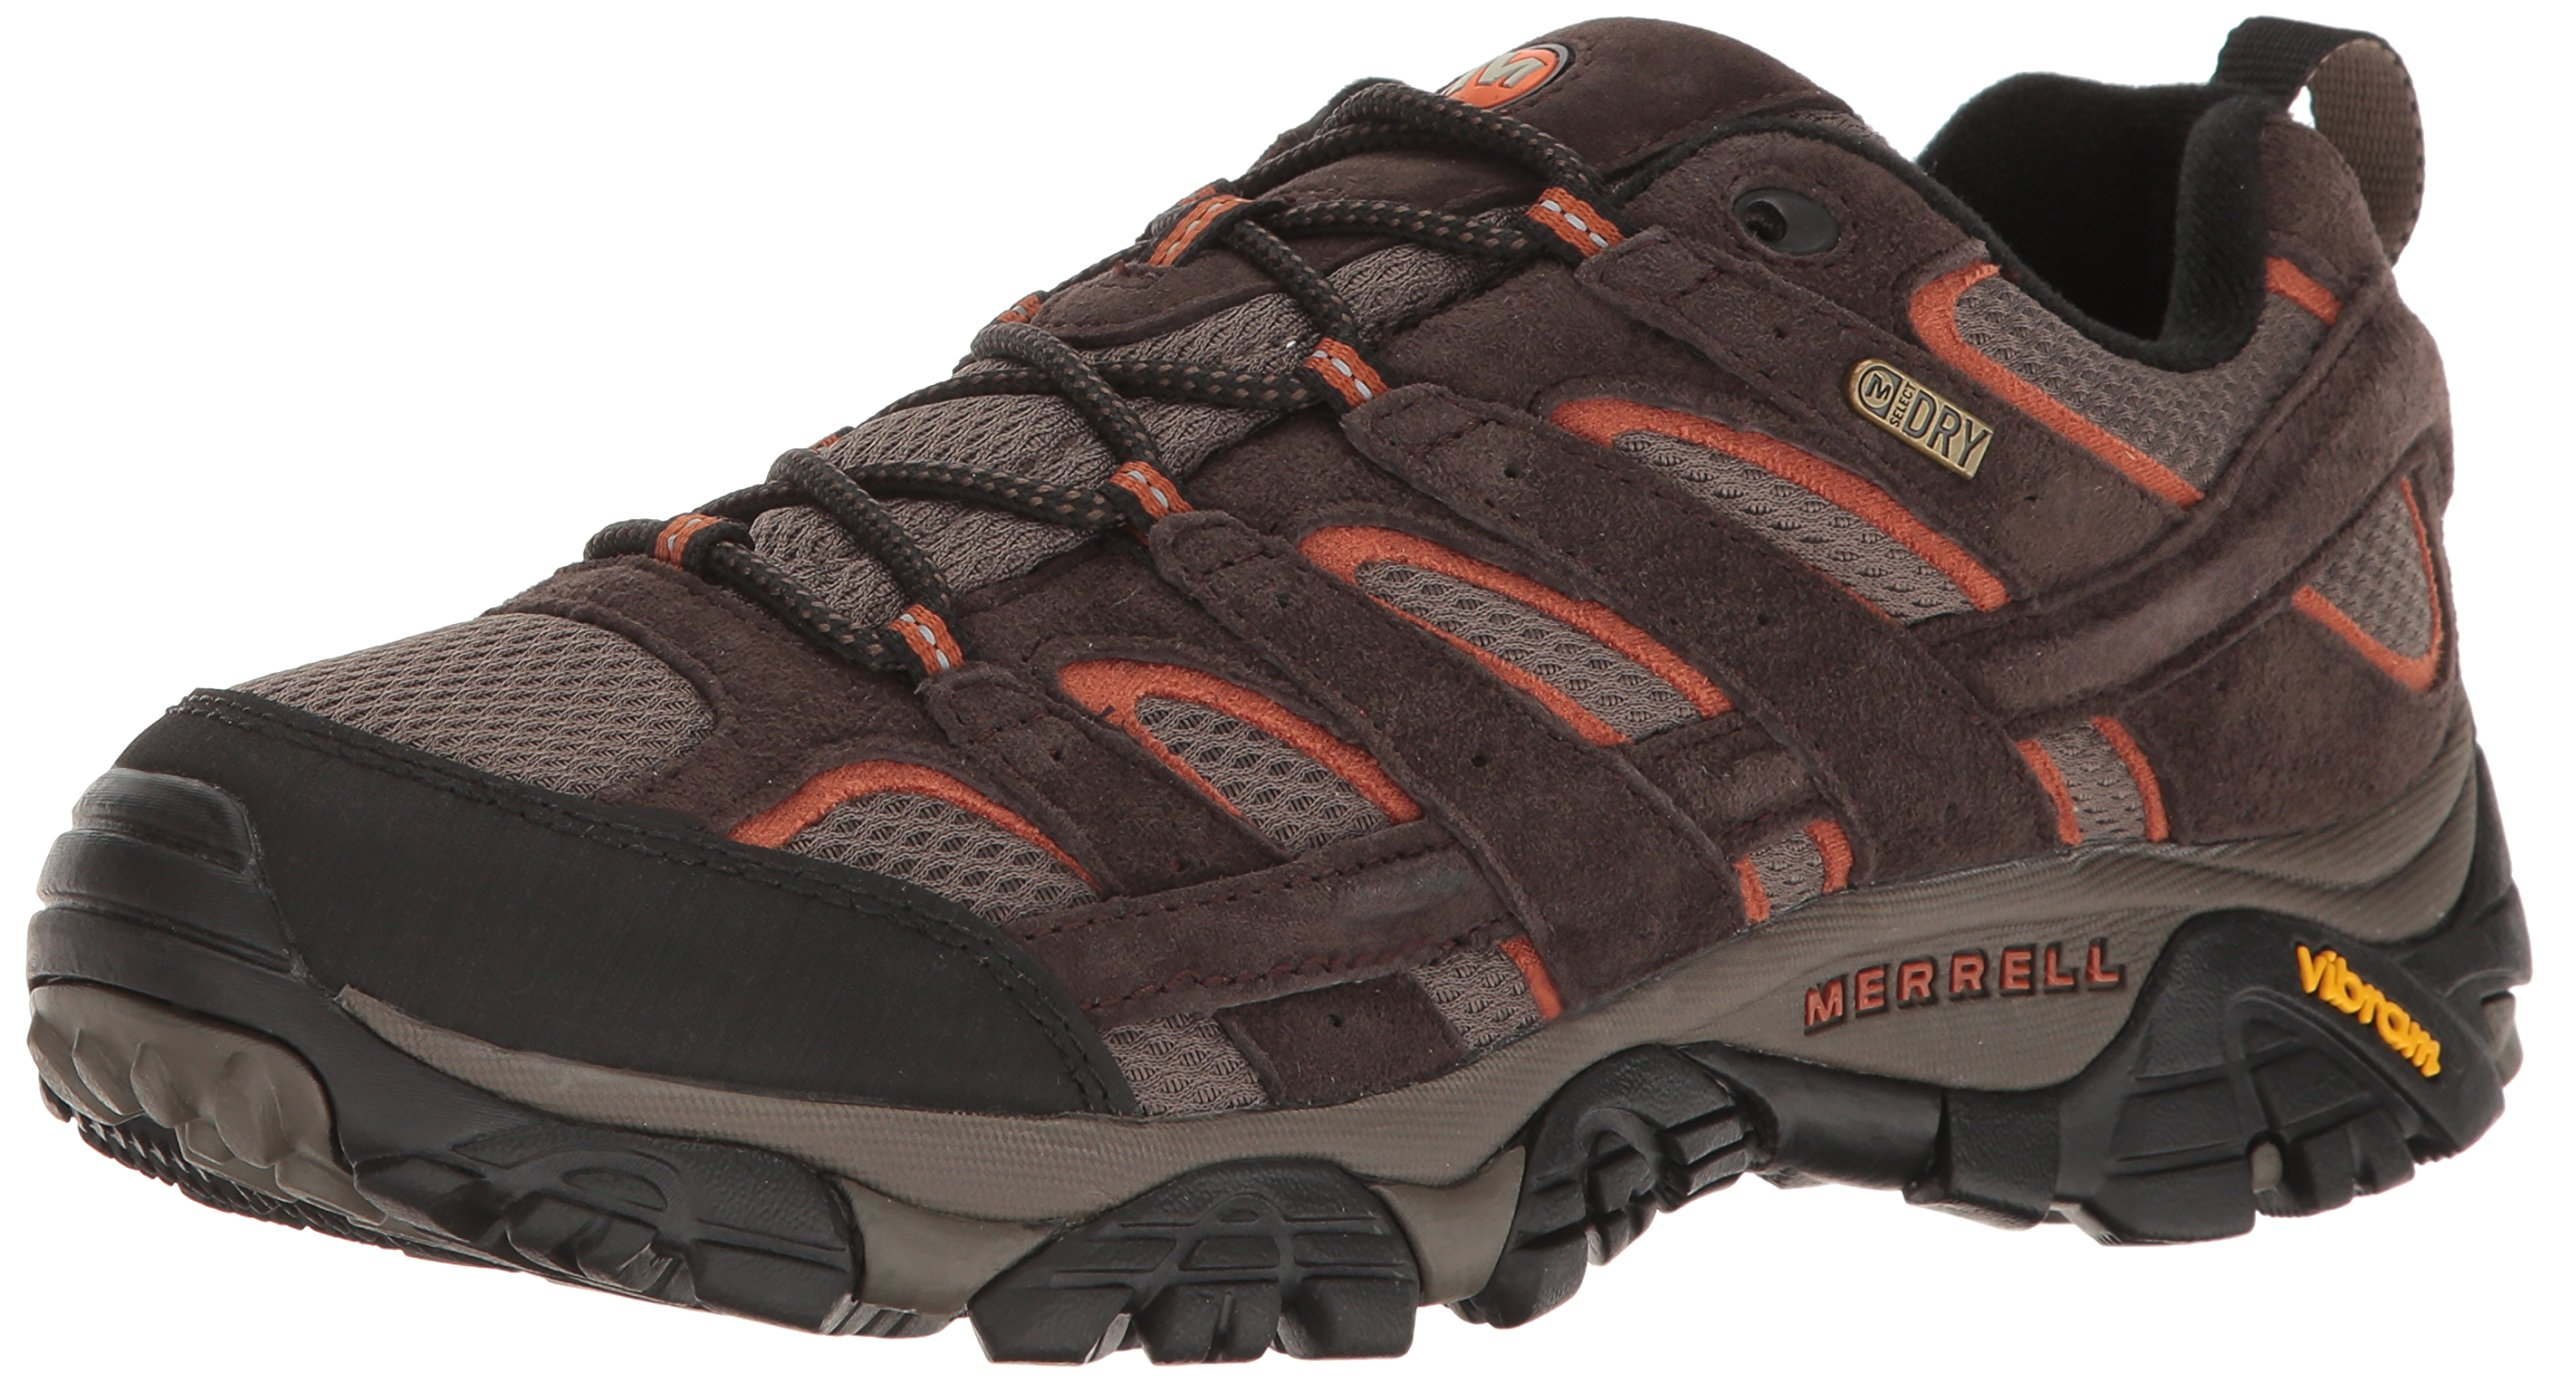 Merrell Men's Moab 2 Waterproof Hiking Shoe, Espresso, 8 M US